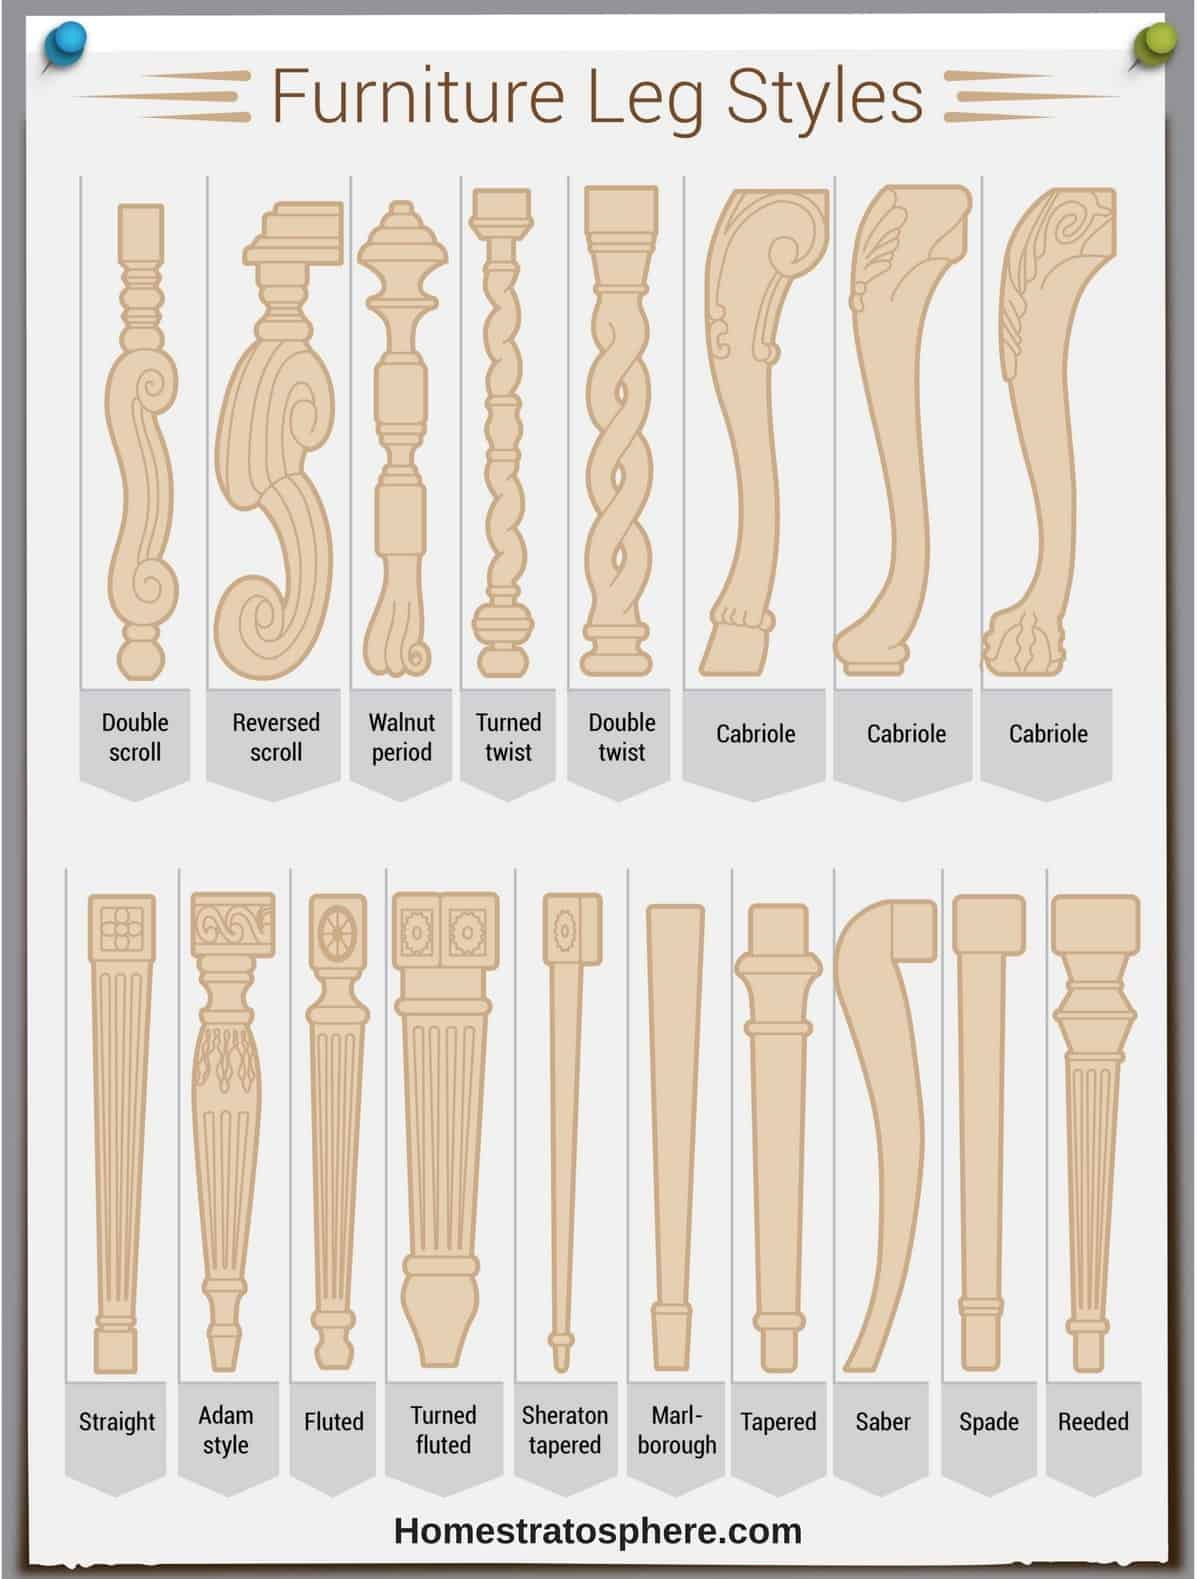 furniture leg styles infographic